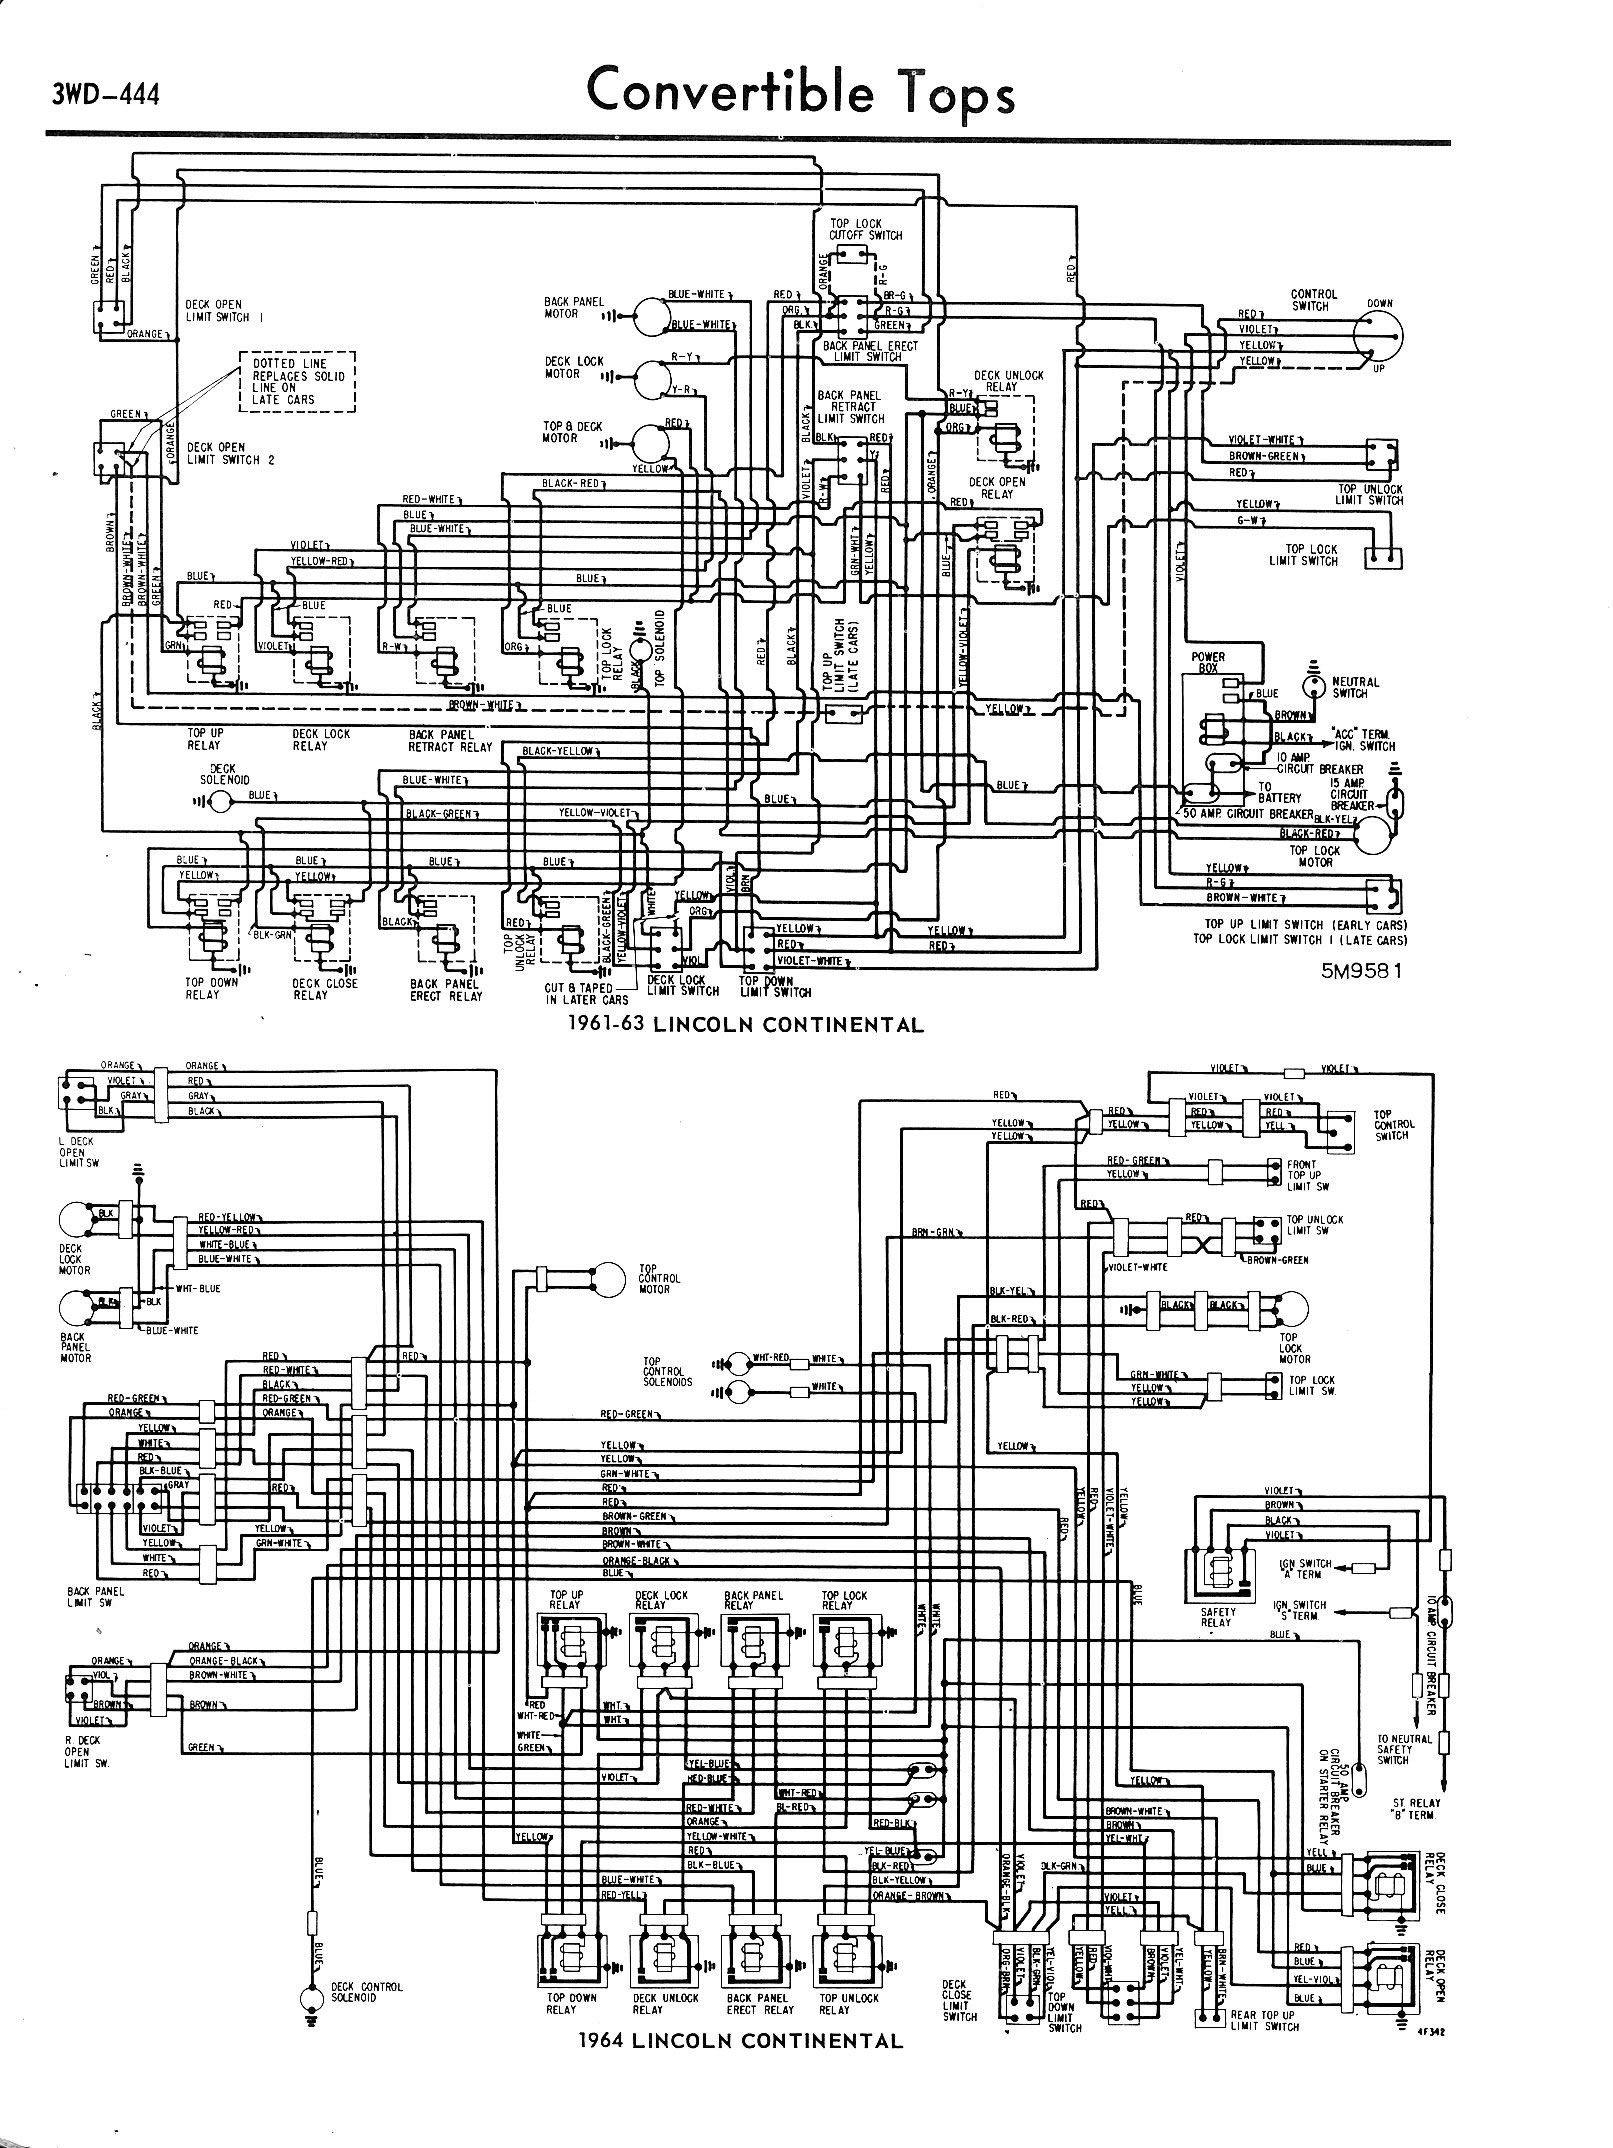 1955 Thunderbird Wiring Diagram 1964 T Bird Seat Electrical Diagrams Ford Rh Wizard Com Convertible